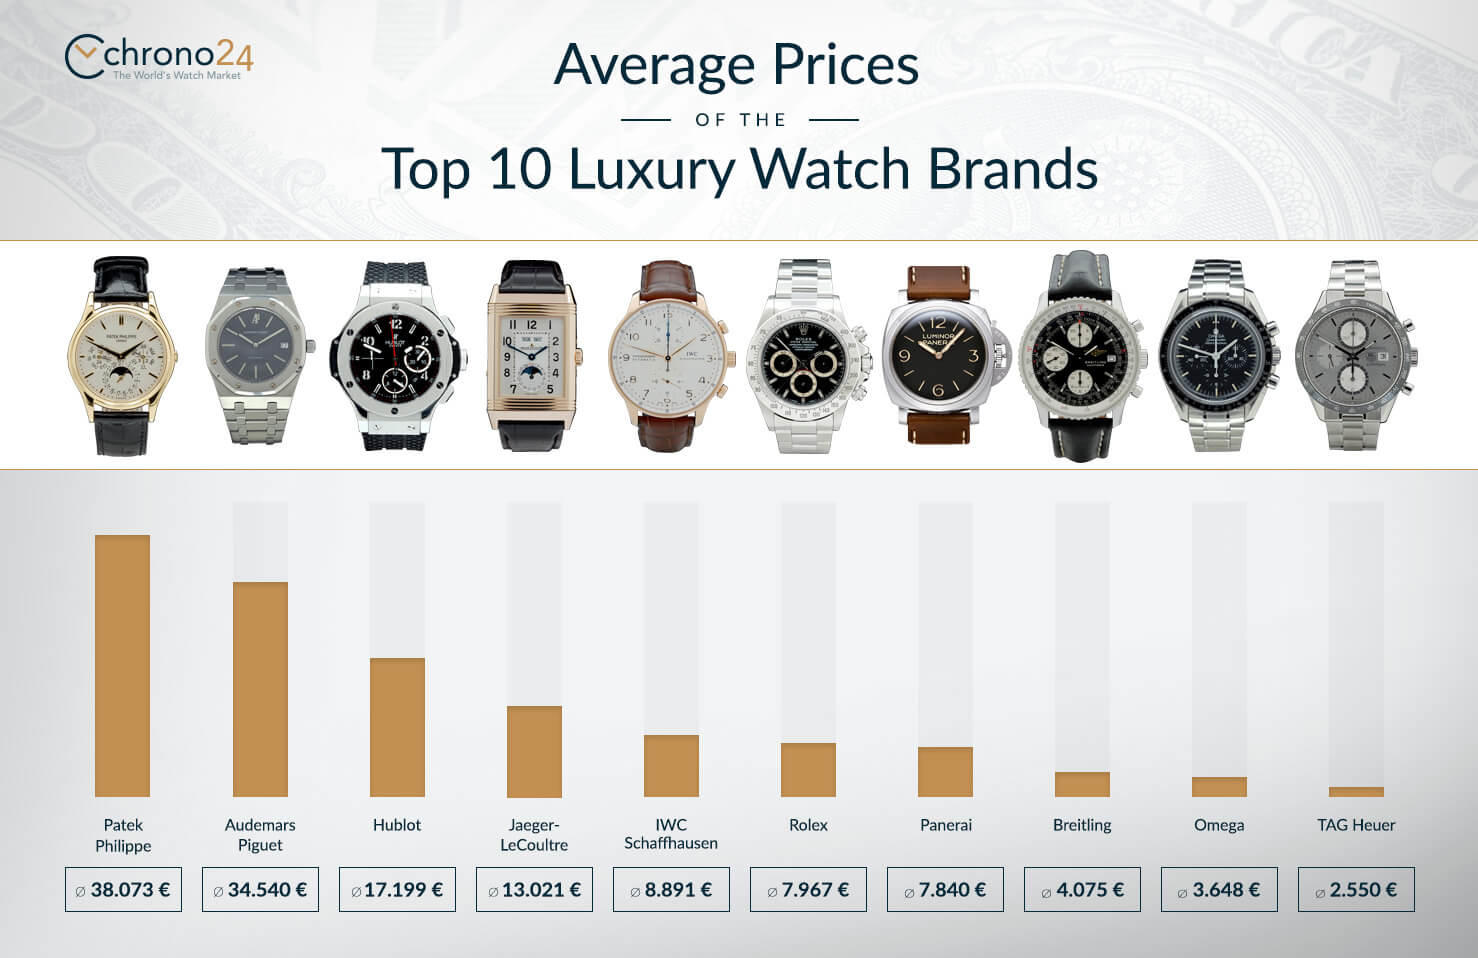 average prices of the top 10 luxury watch brands by Chrono24